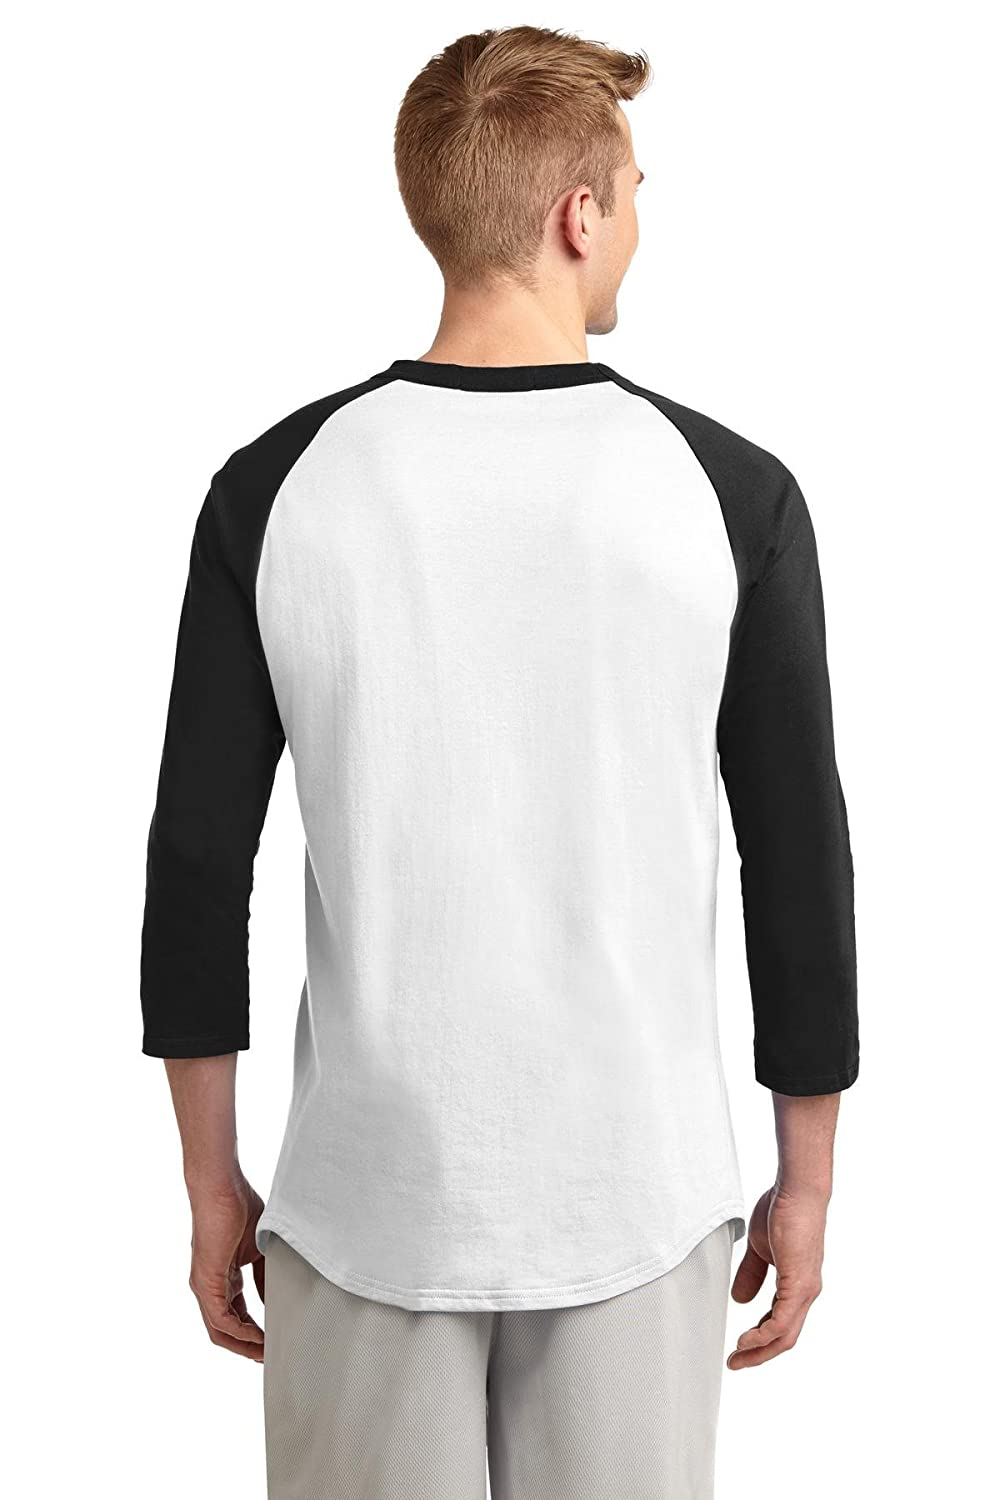 Pro tag 100 cotton 3 4 sleeve raglan baseball shirt in white black - Sport Tek Men S Colorblock Raglan Jersey At Amazon Men S Clothing Store